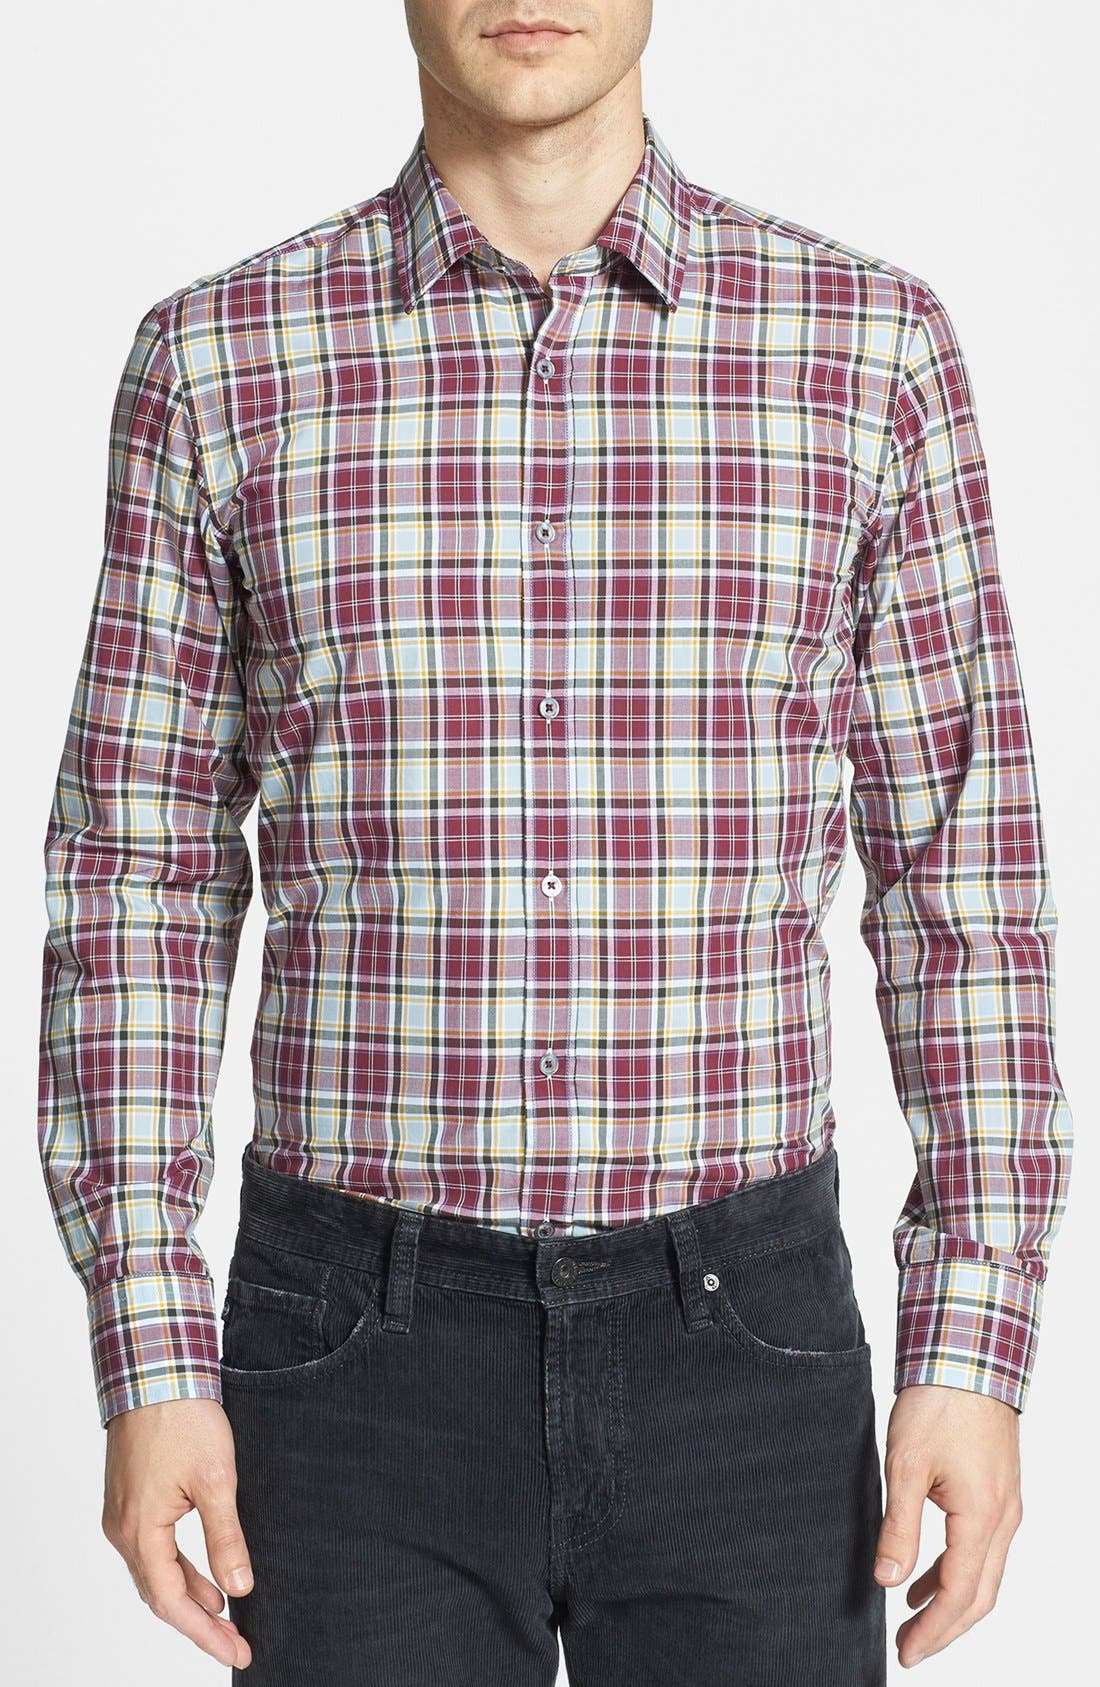 Alternate Image 1 Selected - BOSS HUGO BOSS 'Ronny' Slim Fit Plaid Sport Shirt